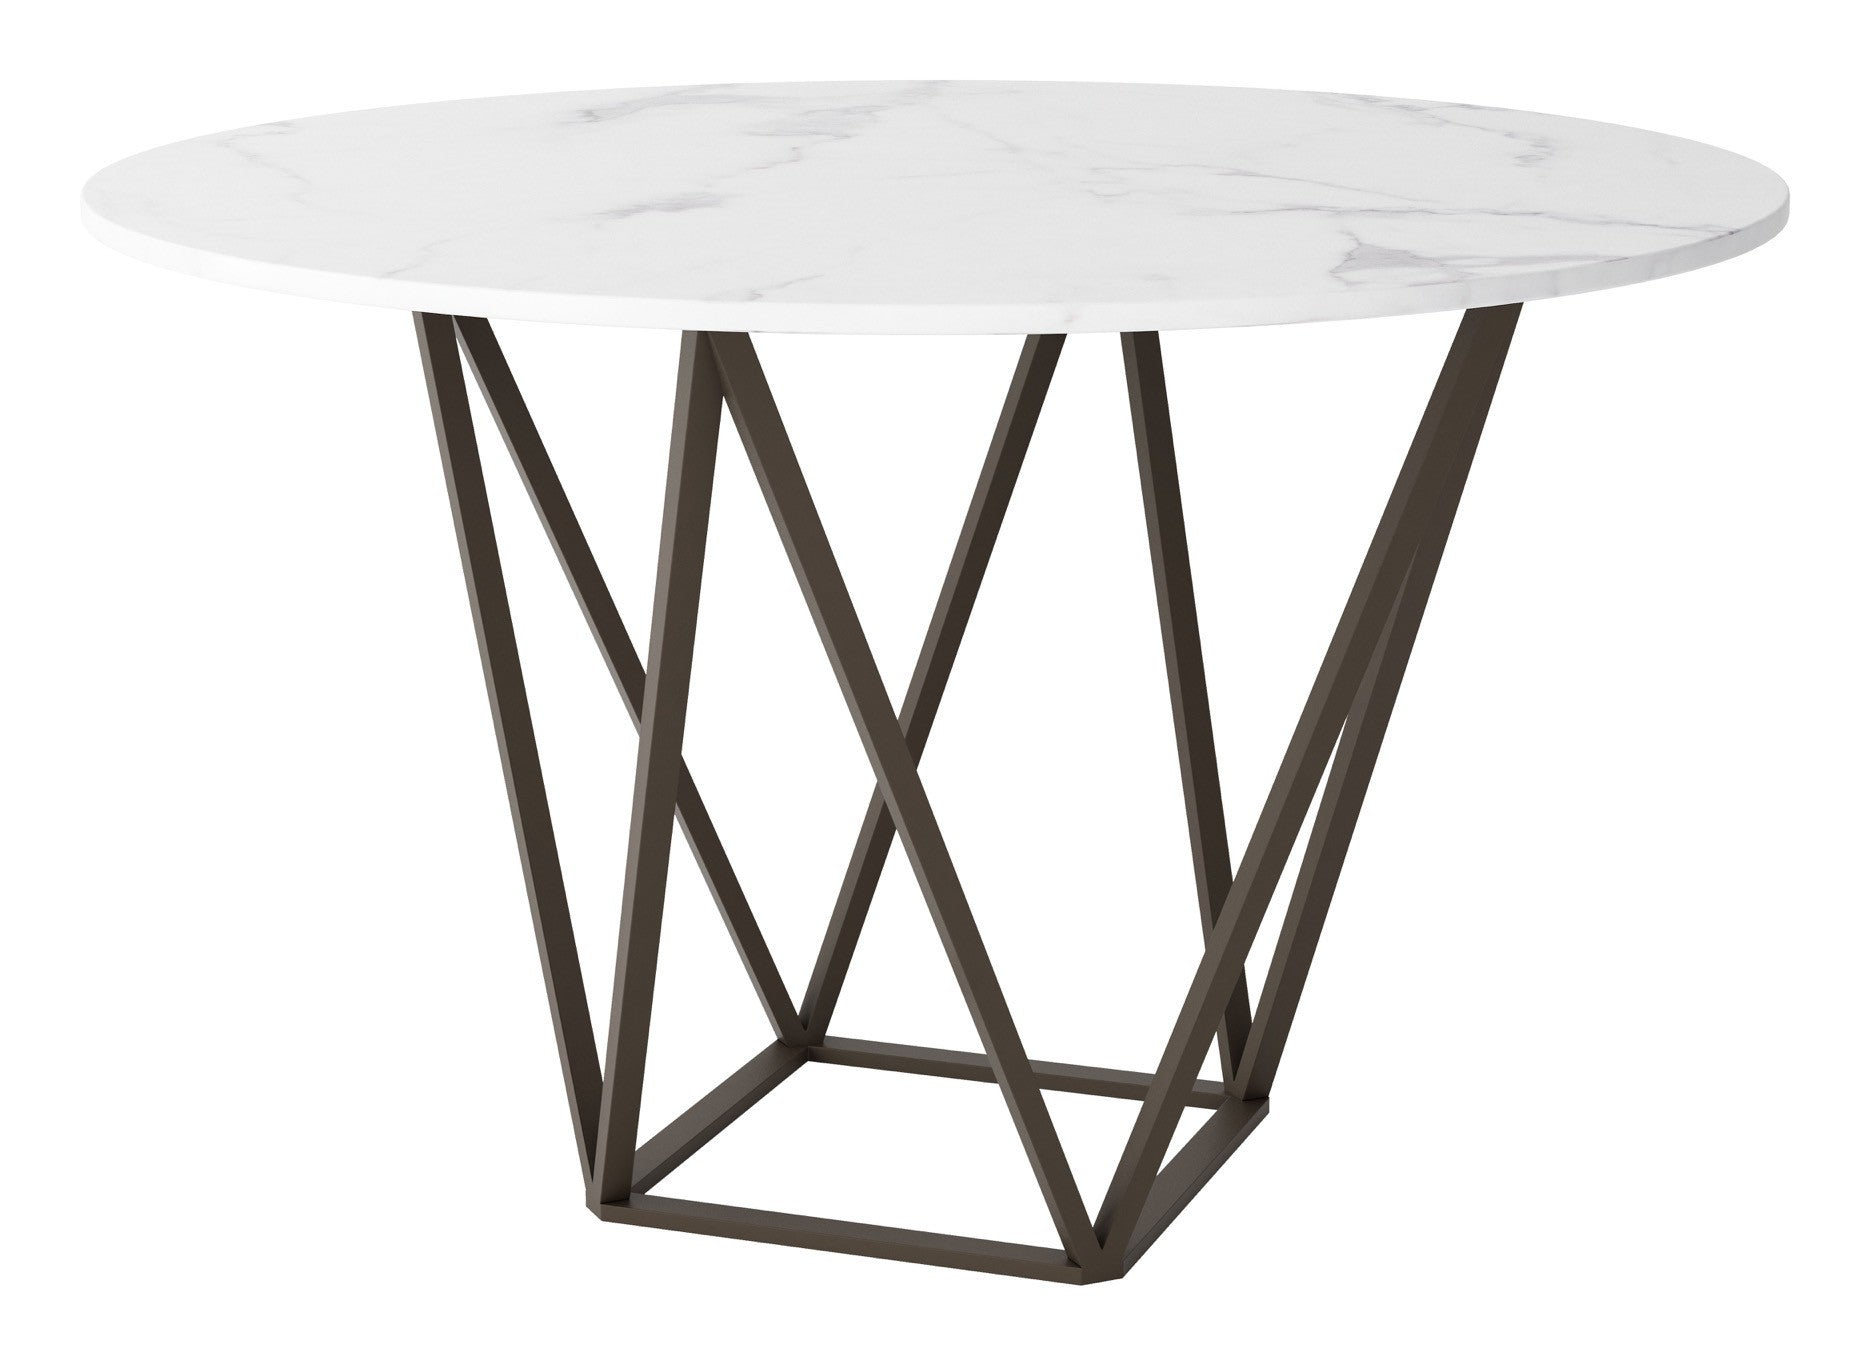 Tintern Round Dining Table with Faux Marble Top on Antique Brass Base